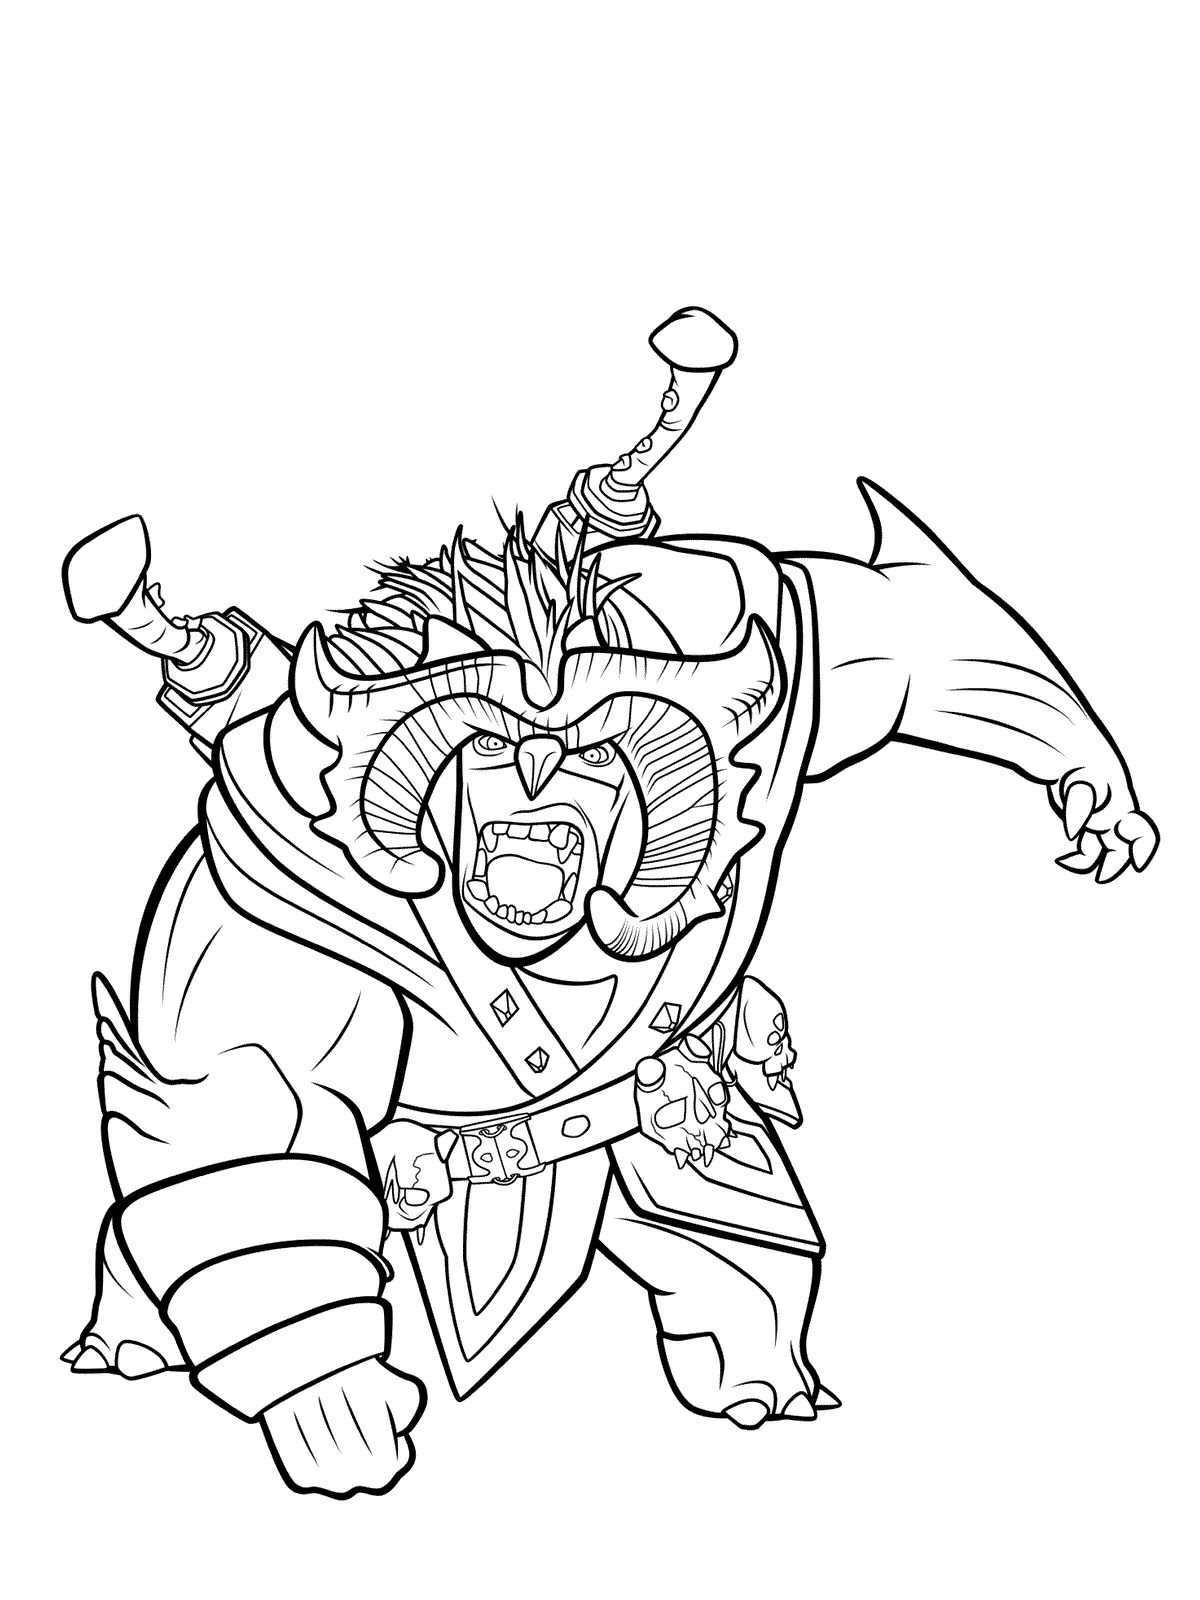 10 Coloring Pages Of Trollhunters